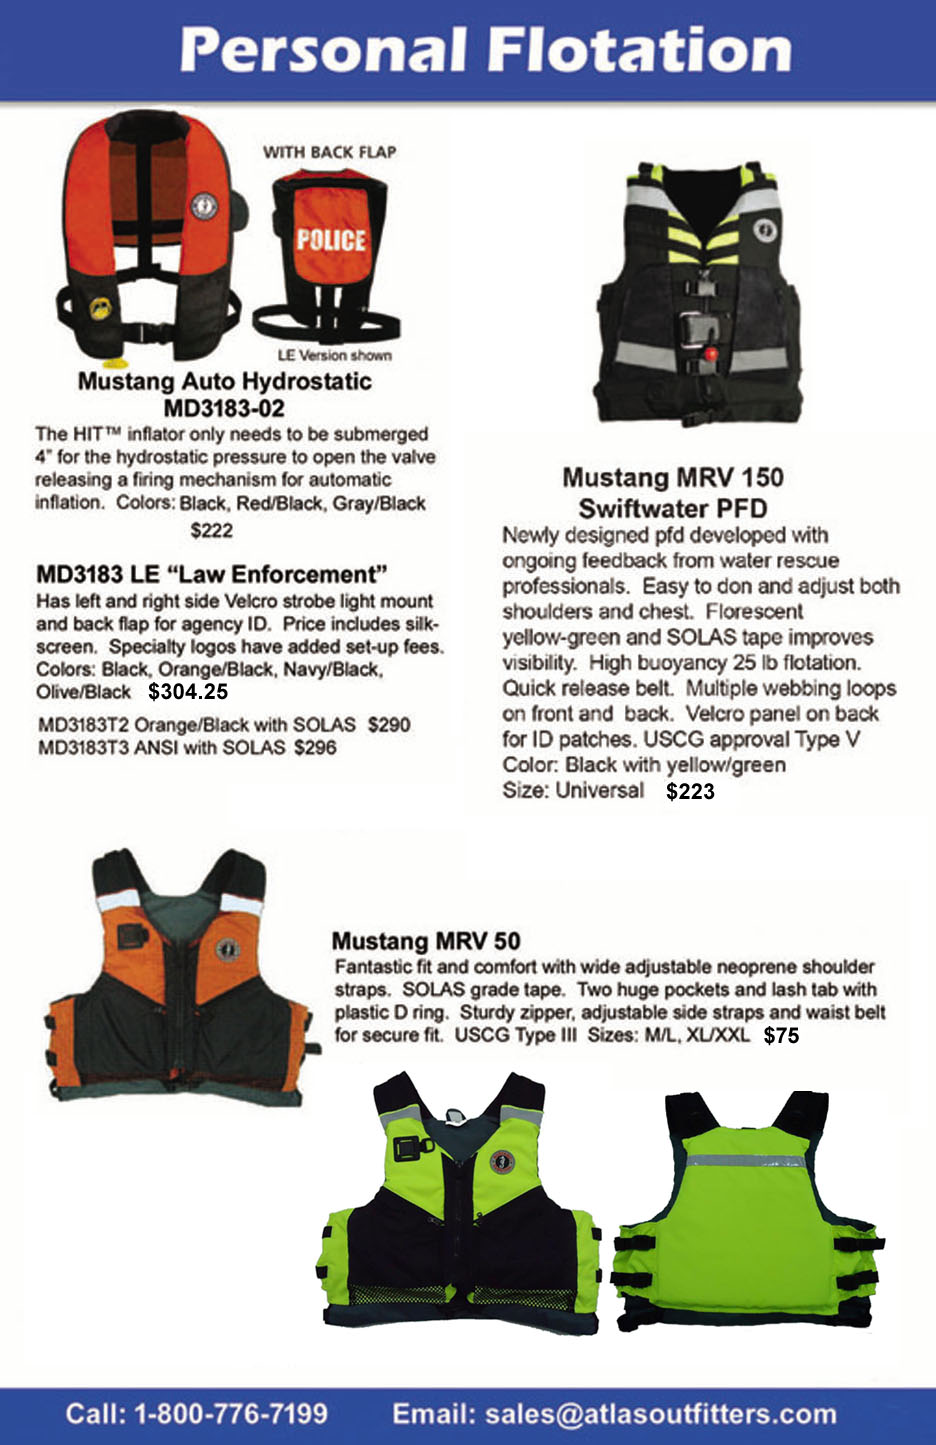 Mustang rescue pfds